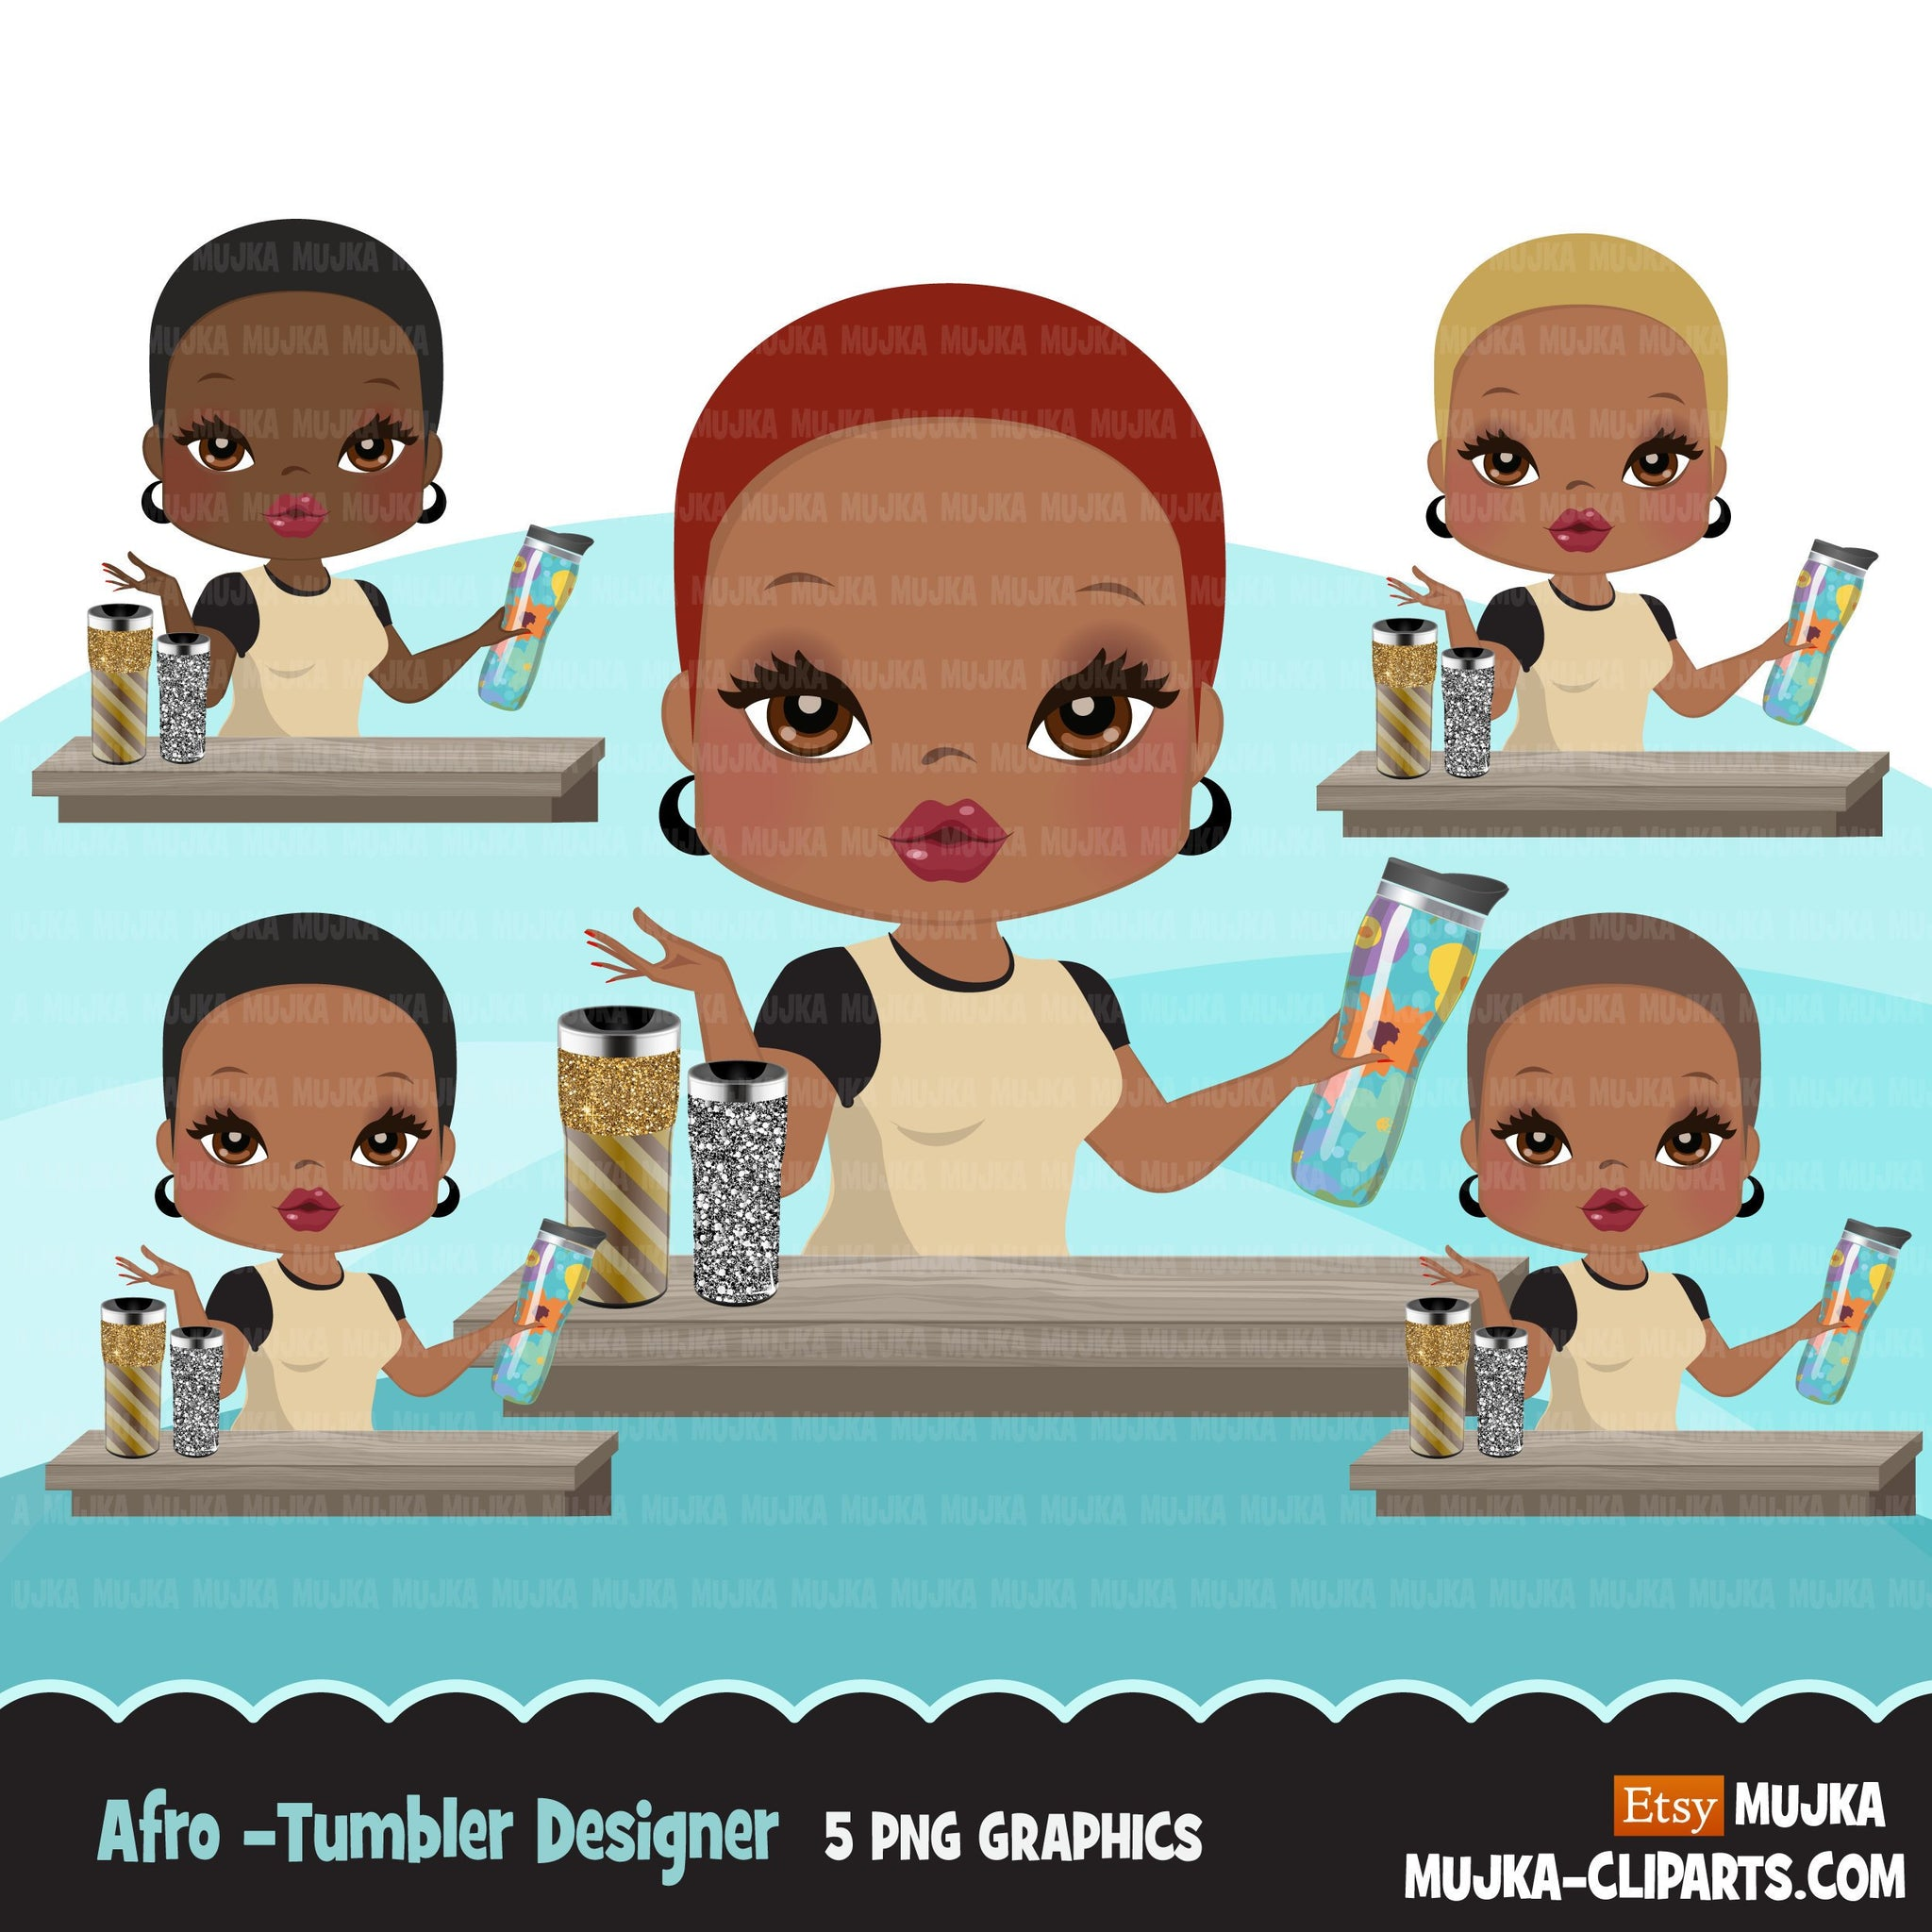 Afro Woman tumbler designer avatar clipart with glitter tumblers, print and cut, crafty maker boss black girl clip art